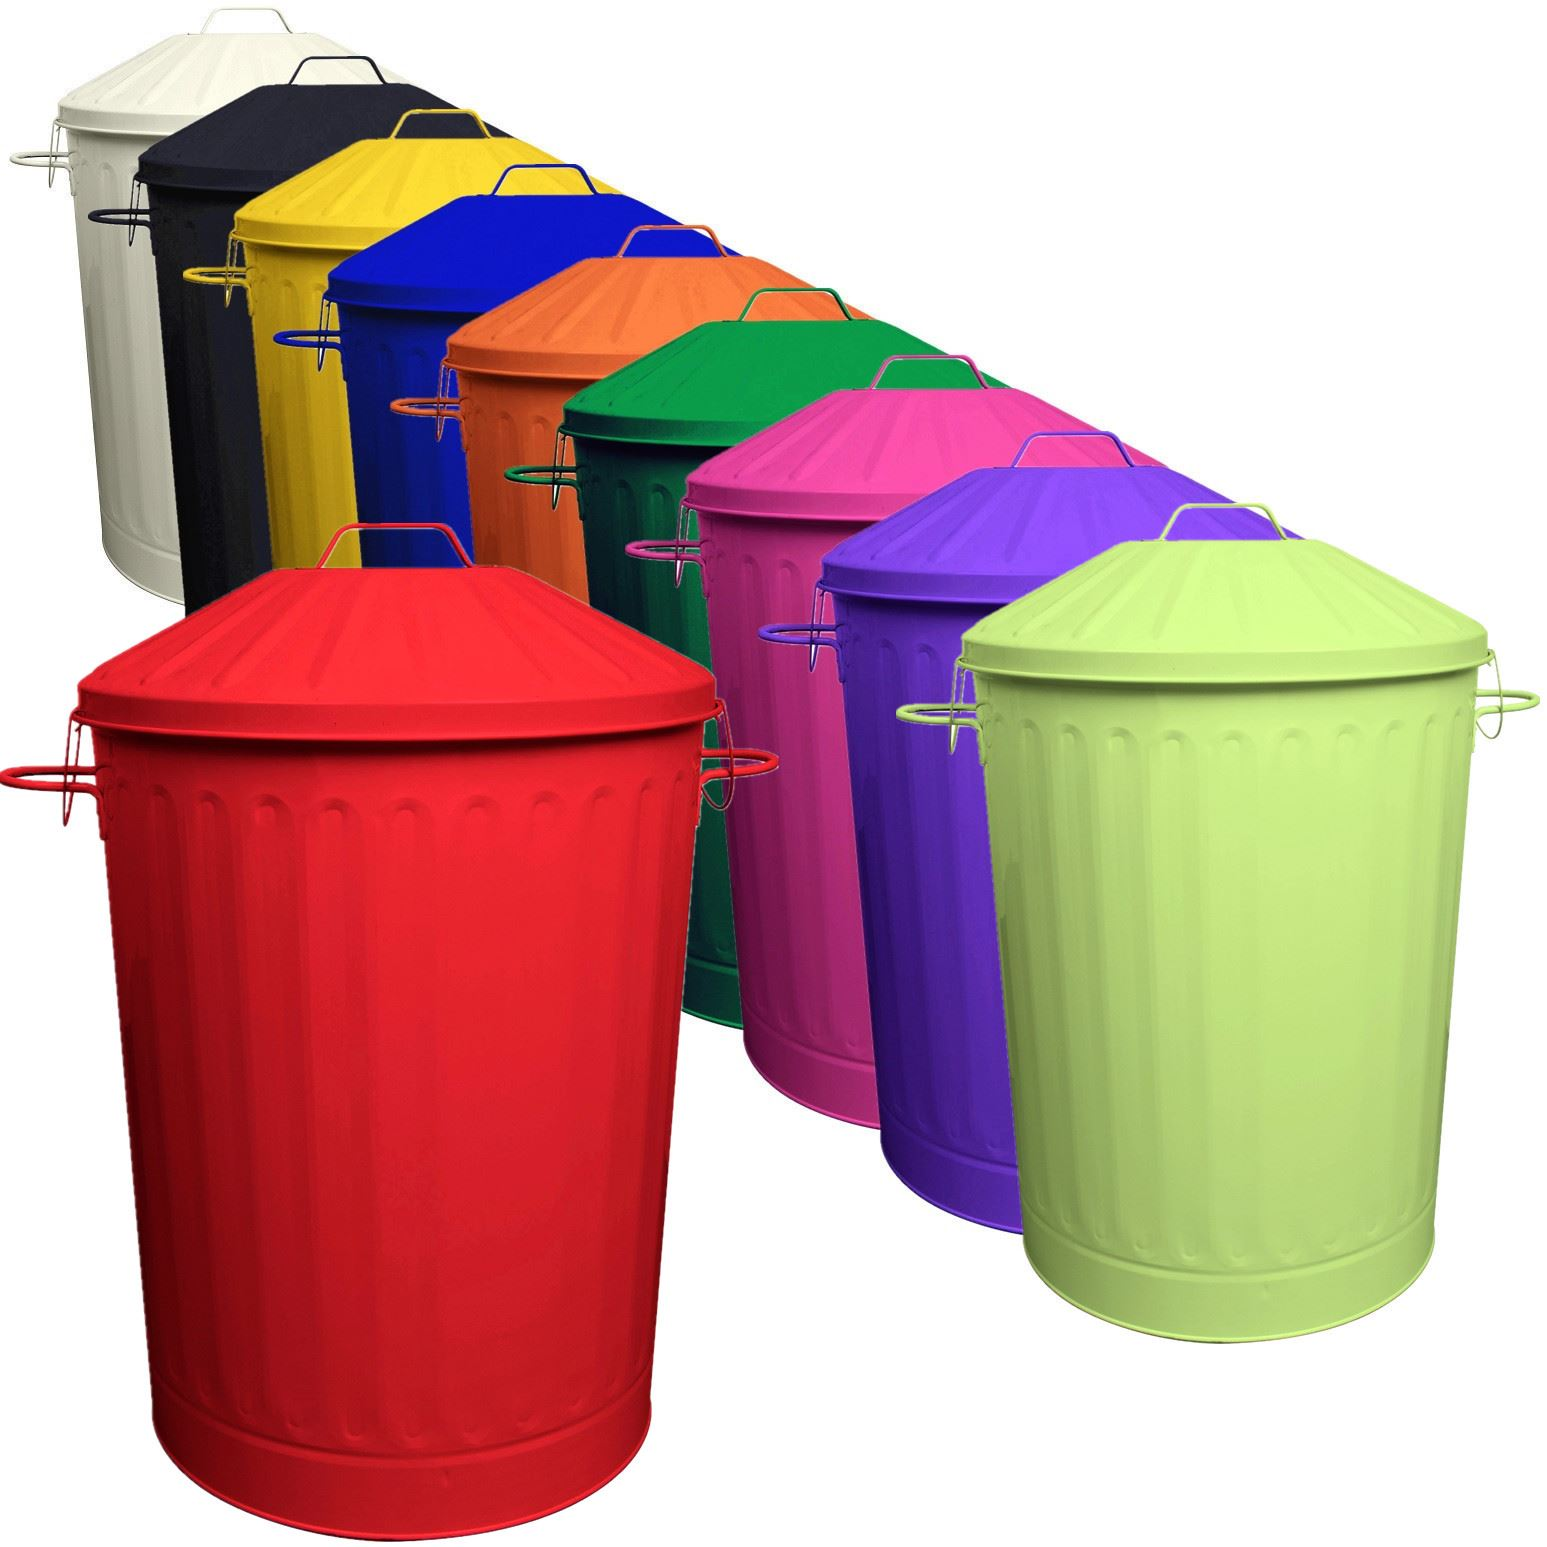 how to get dustbins for house